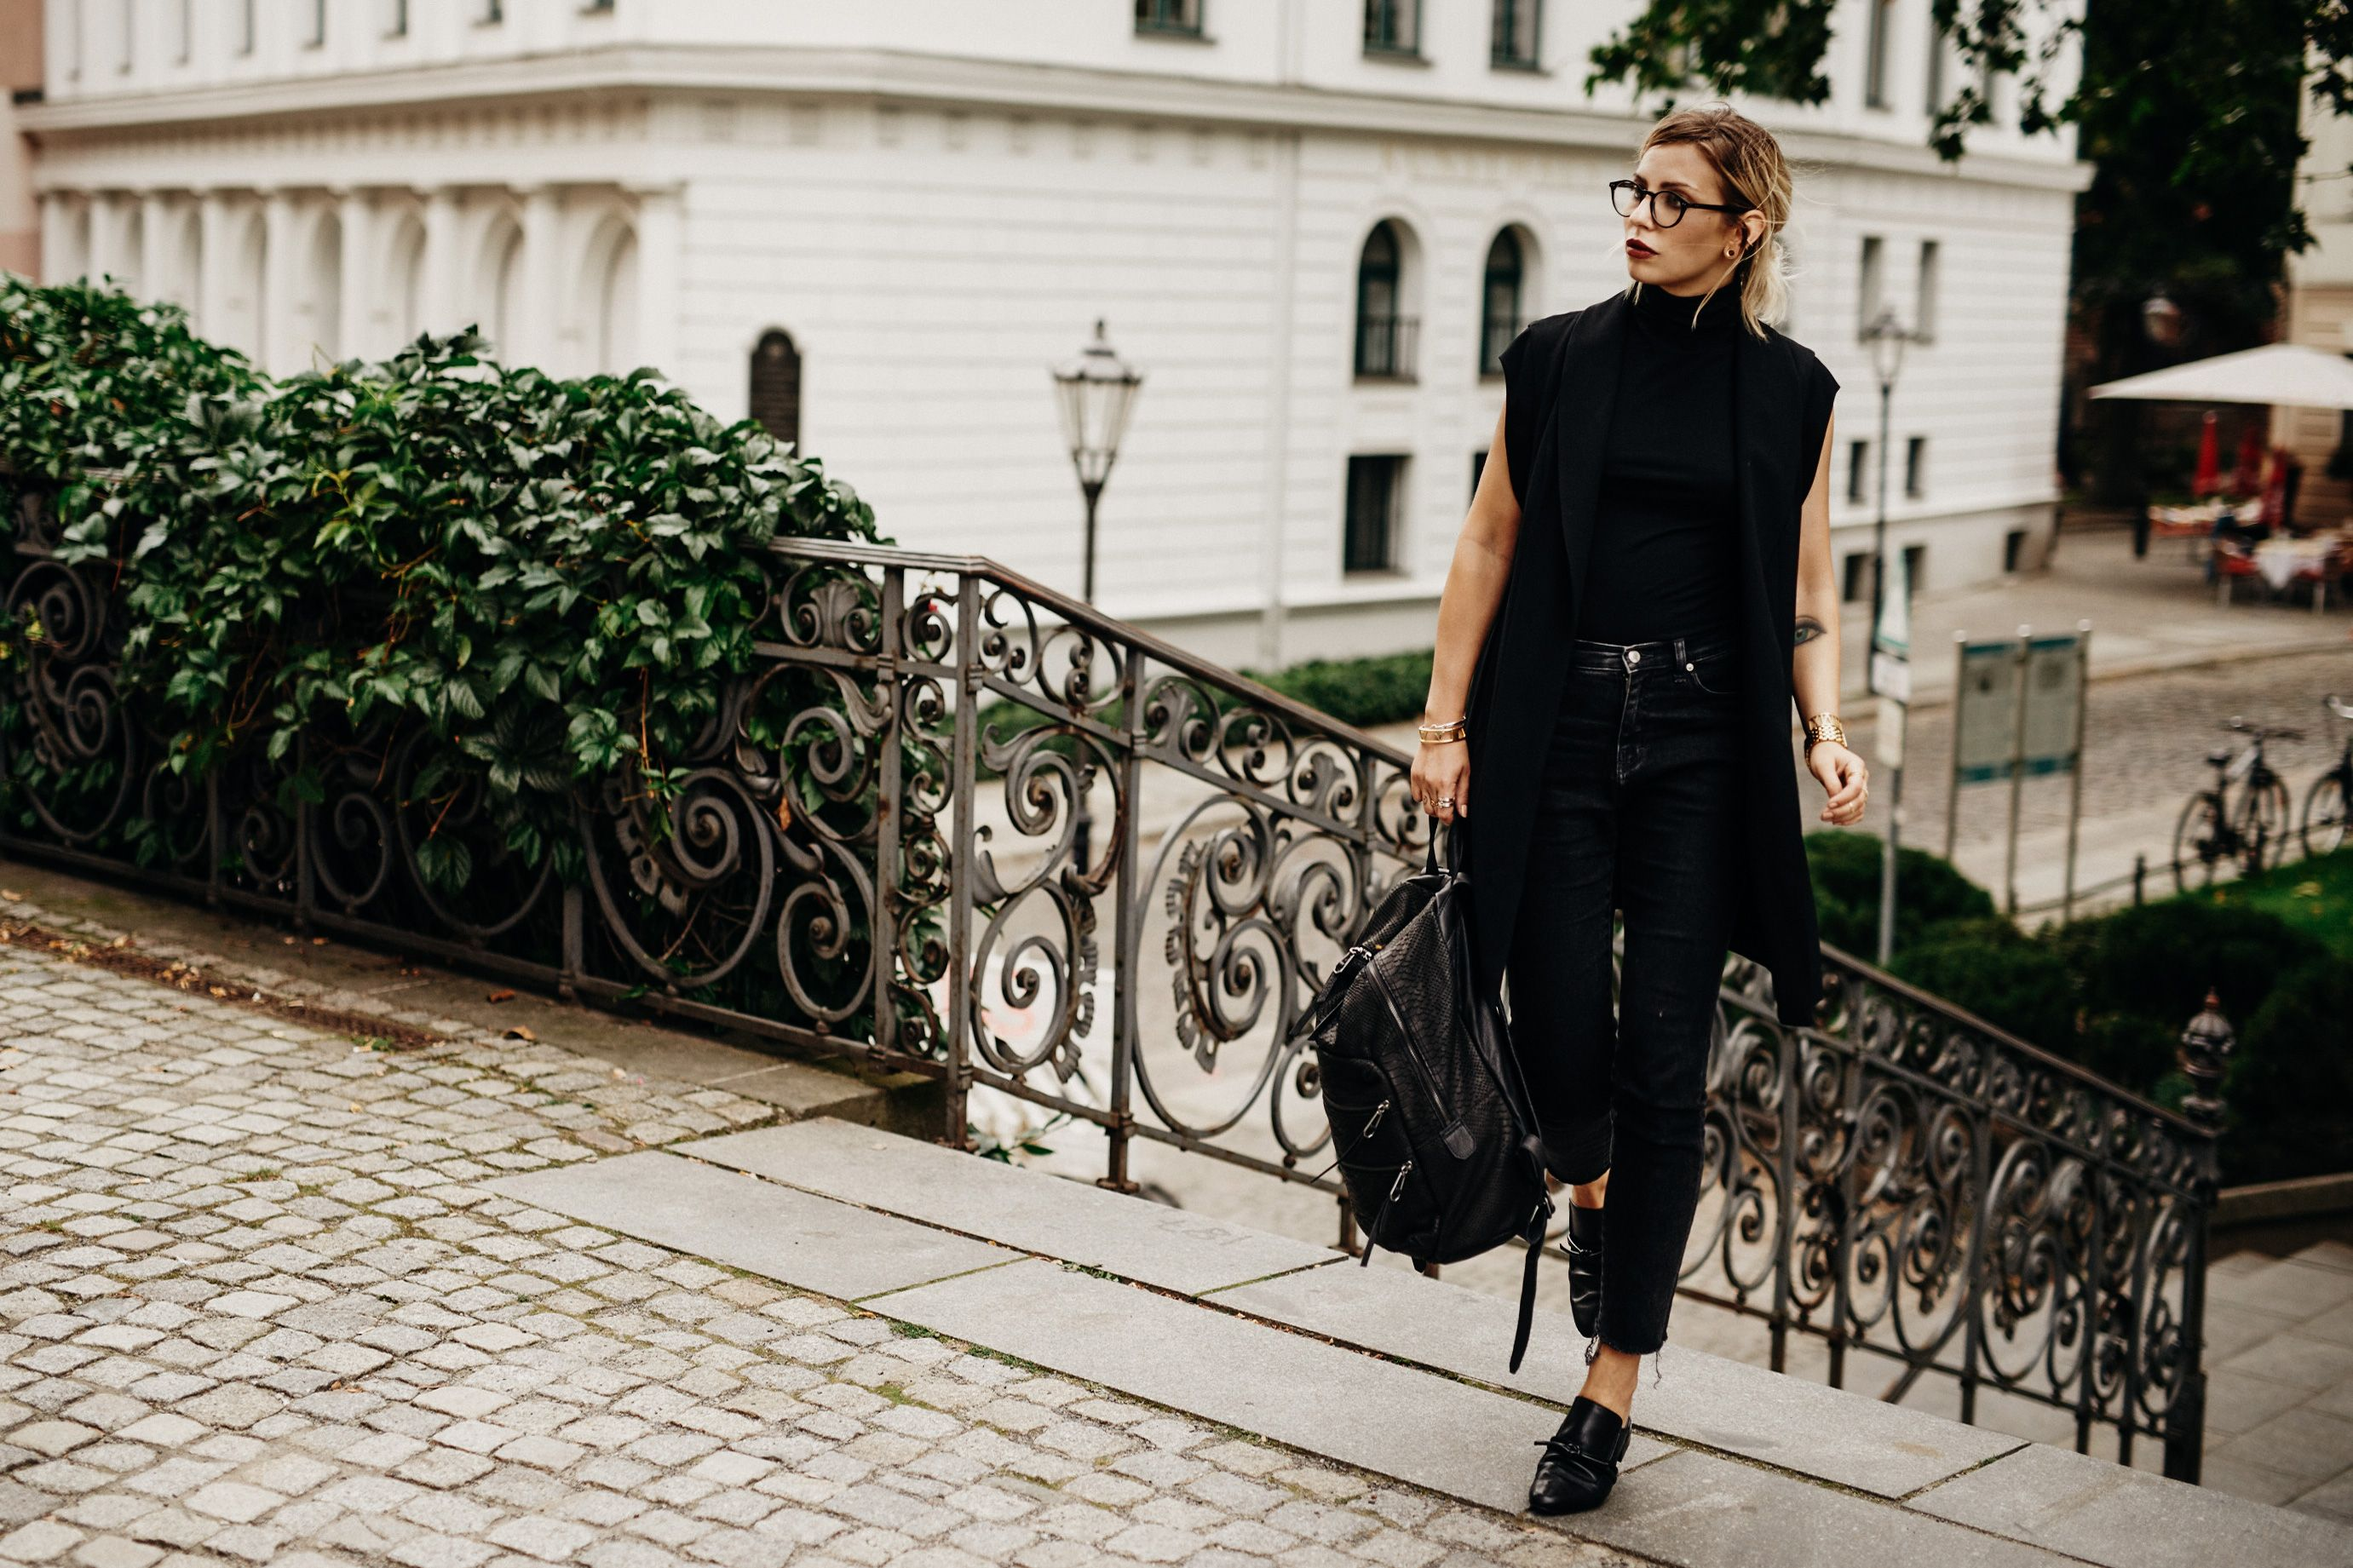 All Black Everything Outfit Fashion Style Edgy Black Dark